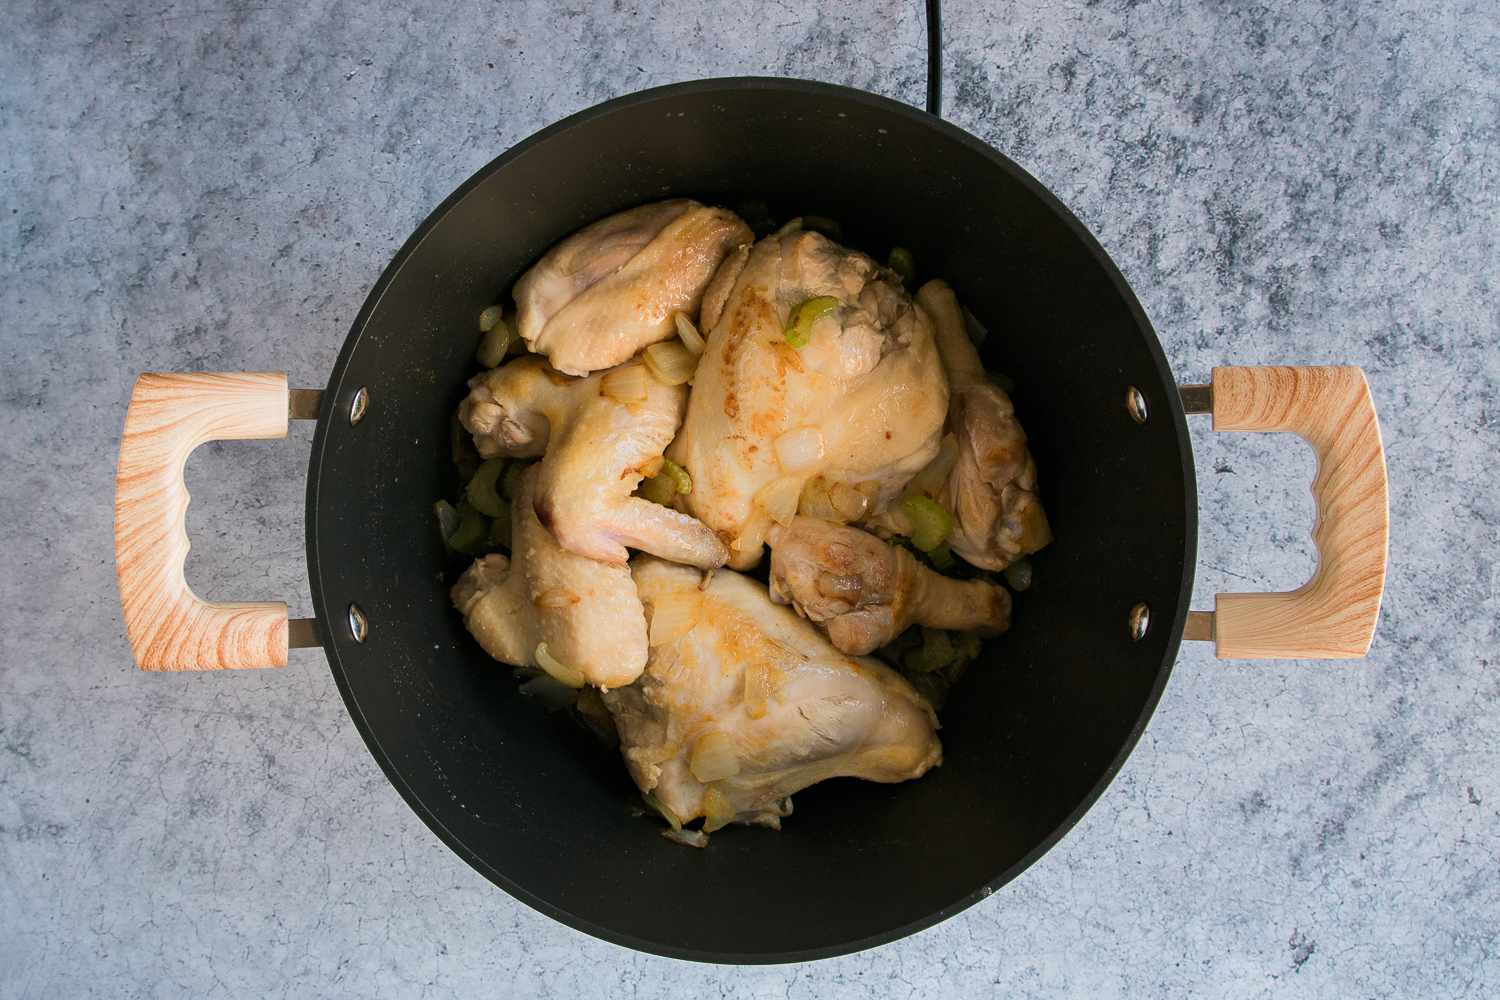 celery, onion, and chicken and brown chicken pieces in a Dutch oven